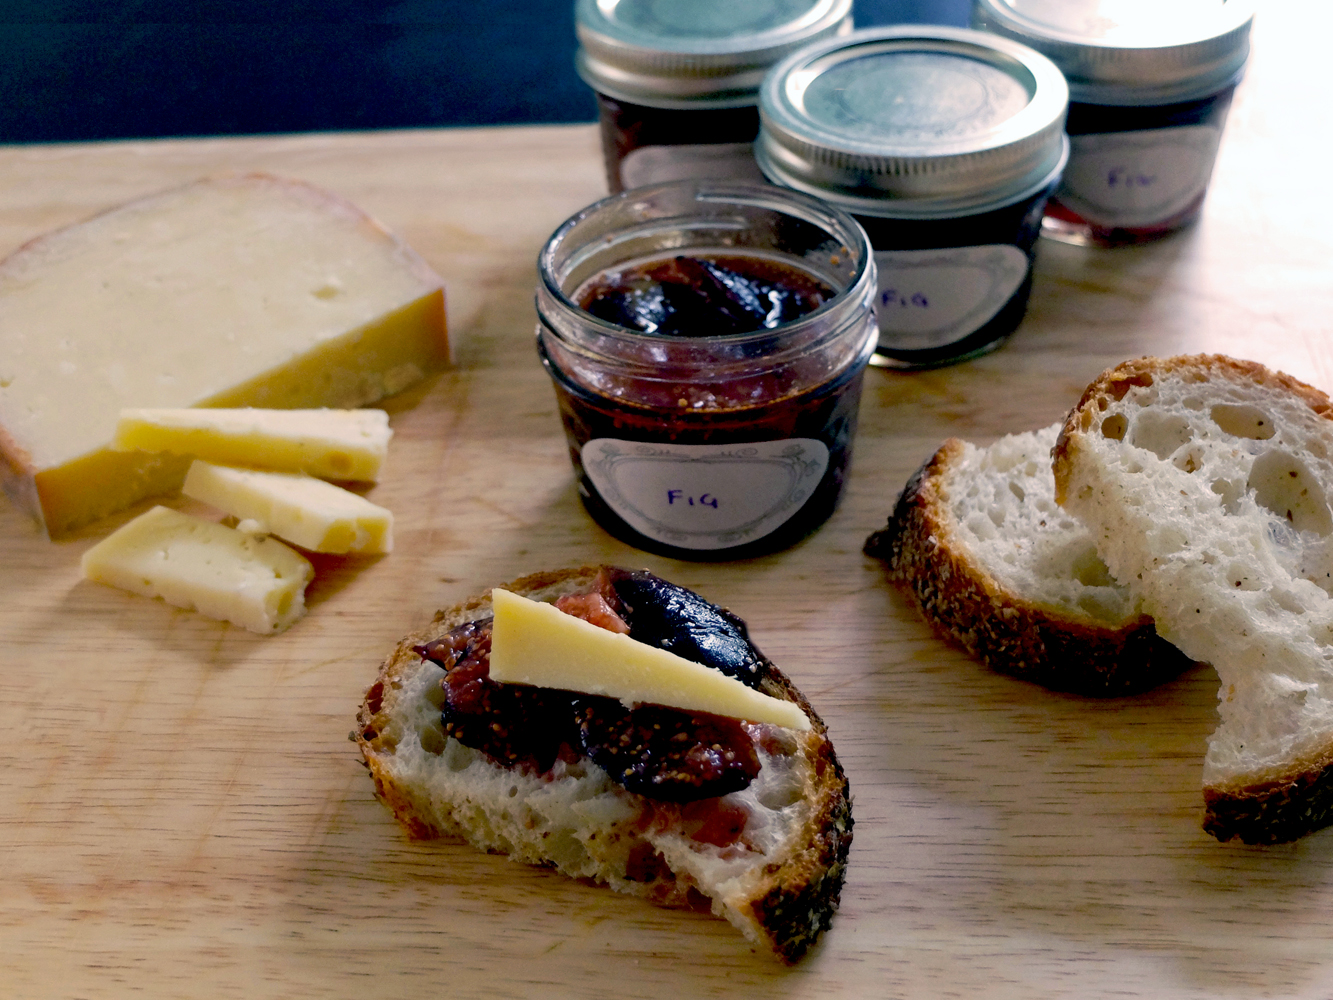 Fresh Mission fig preserves with aged gouda cheese.